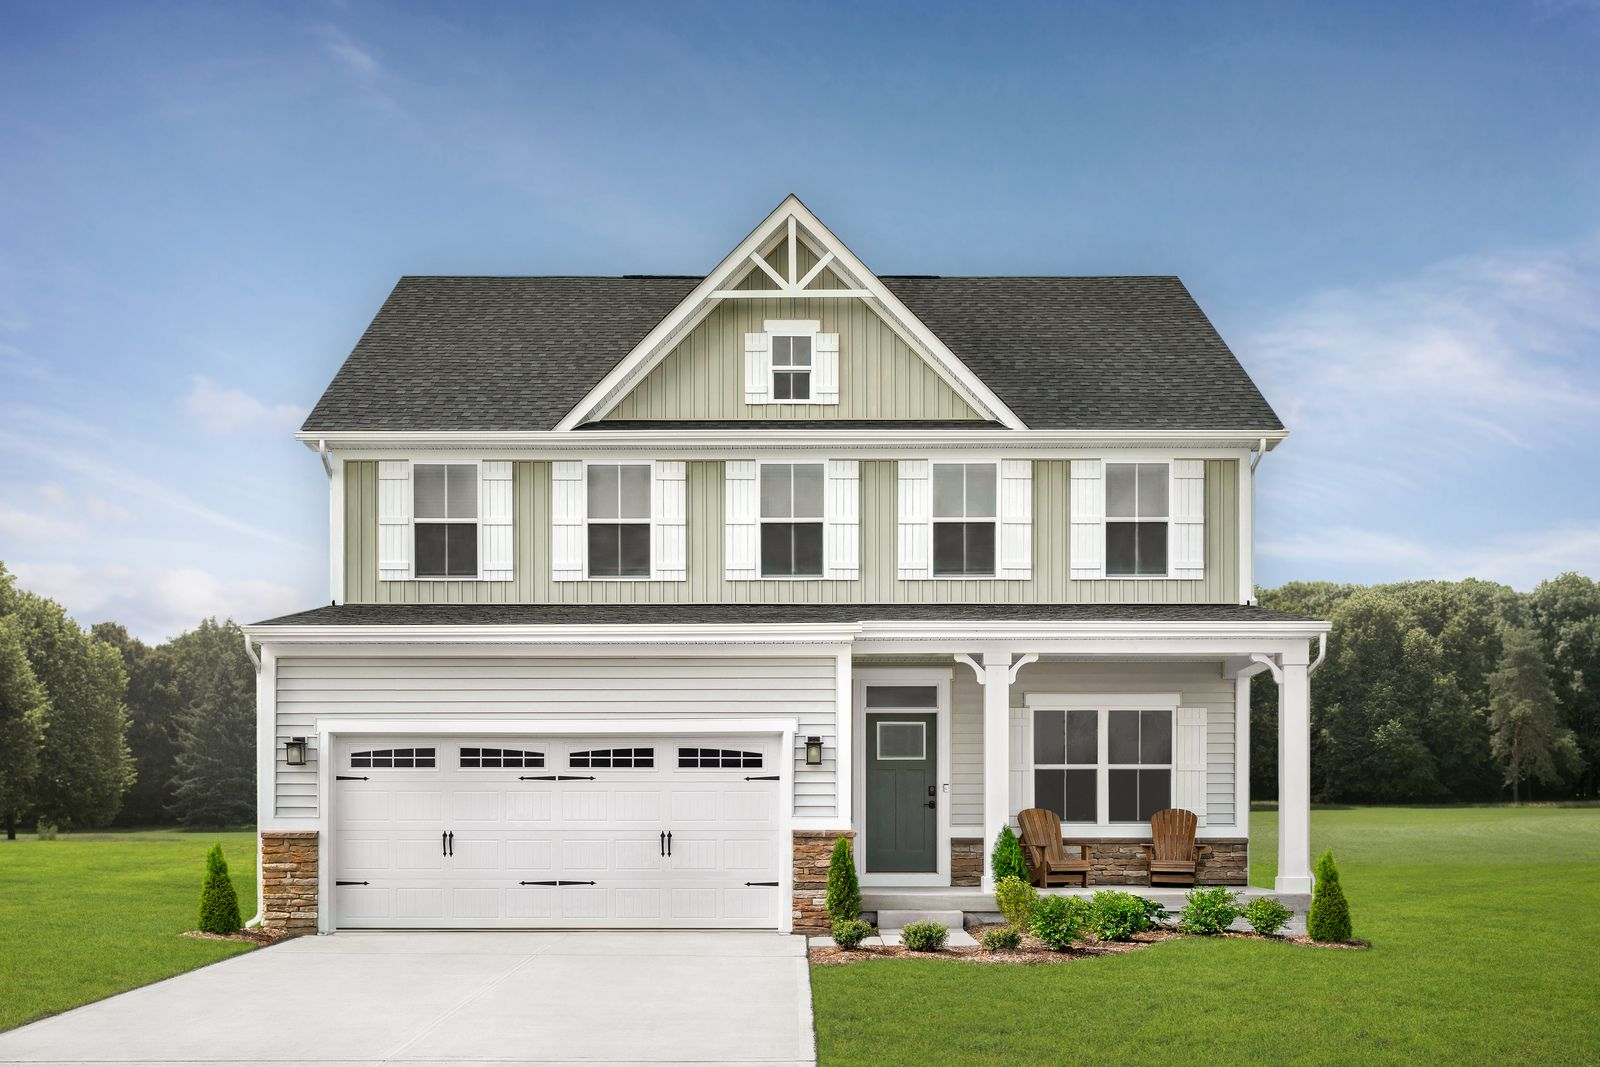 MAGNOLIA GROVE RESERVE - FROM THE MID $300s:Spacious homes in a park-like setting in West Murfreesboro with resort-style amenities & Rockvale schools coming Spring 2021.Join the VIP list for access to exclusive community updates!